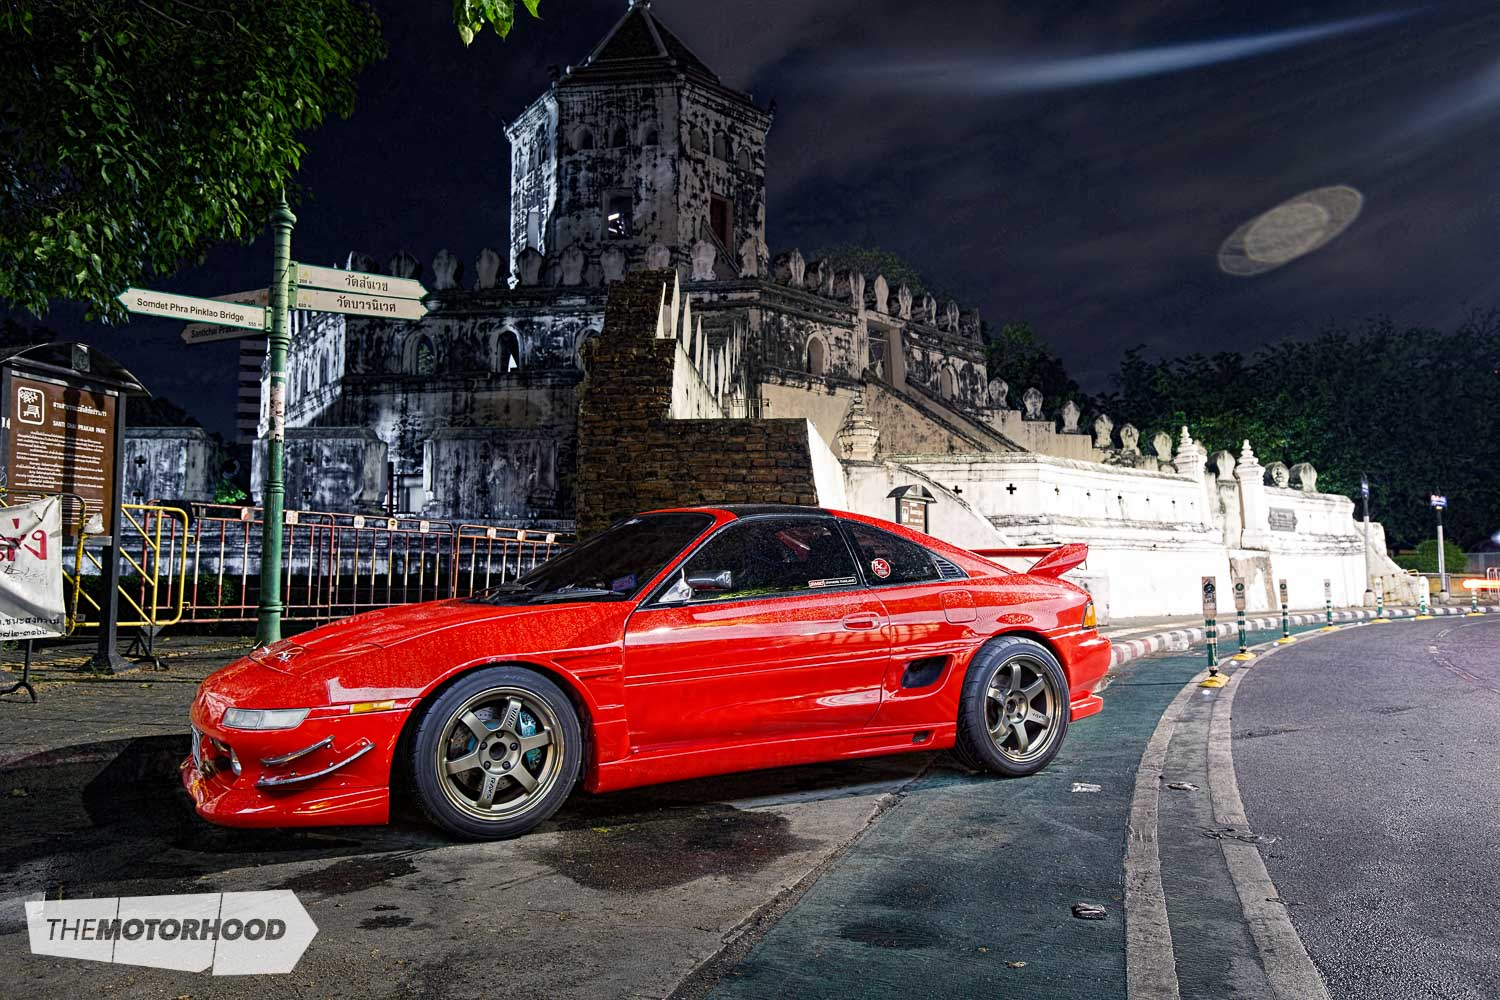 Thailand Street Metal: a local's guide to the Thailand car scene